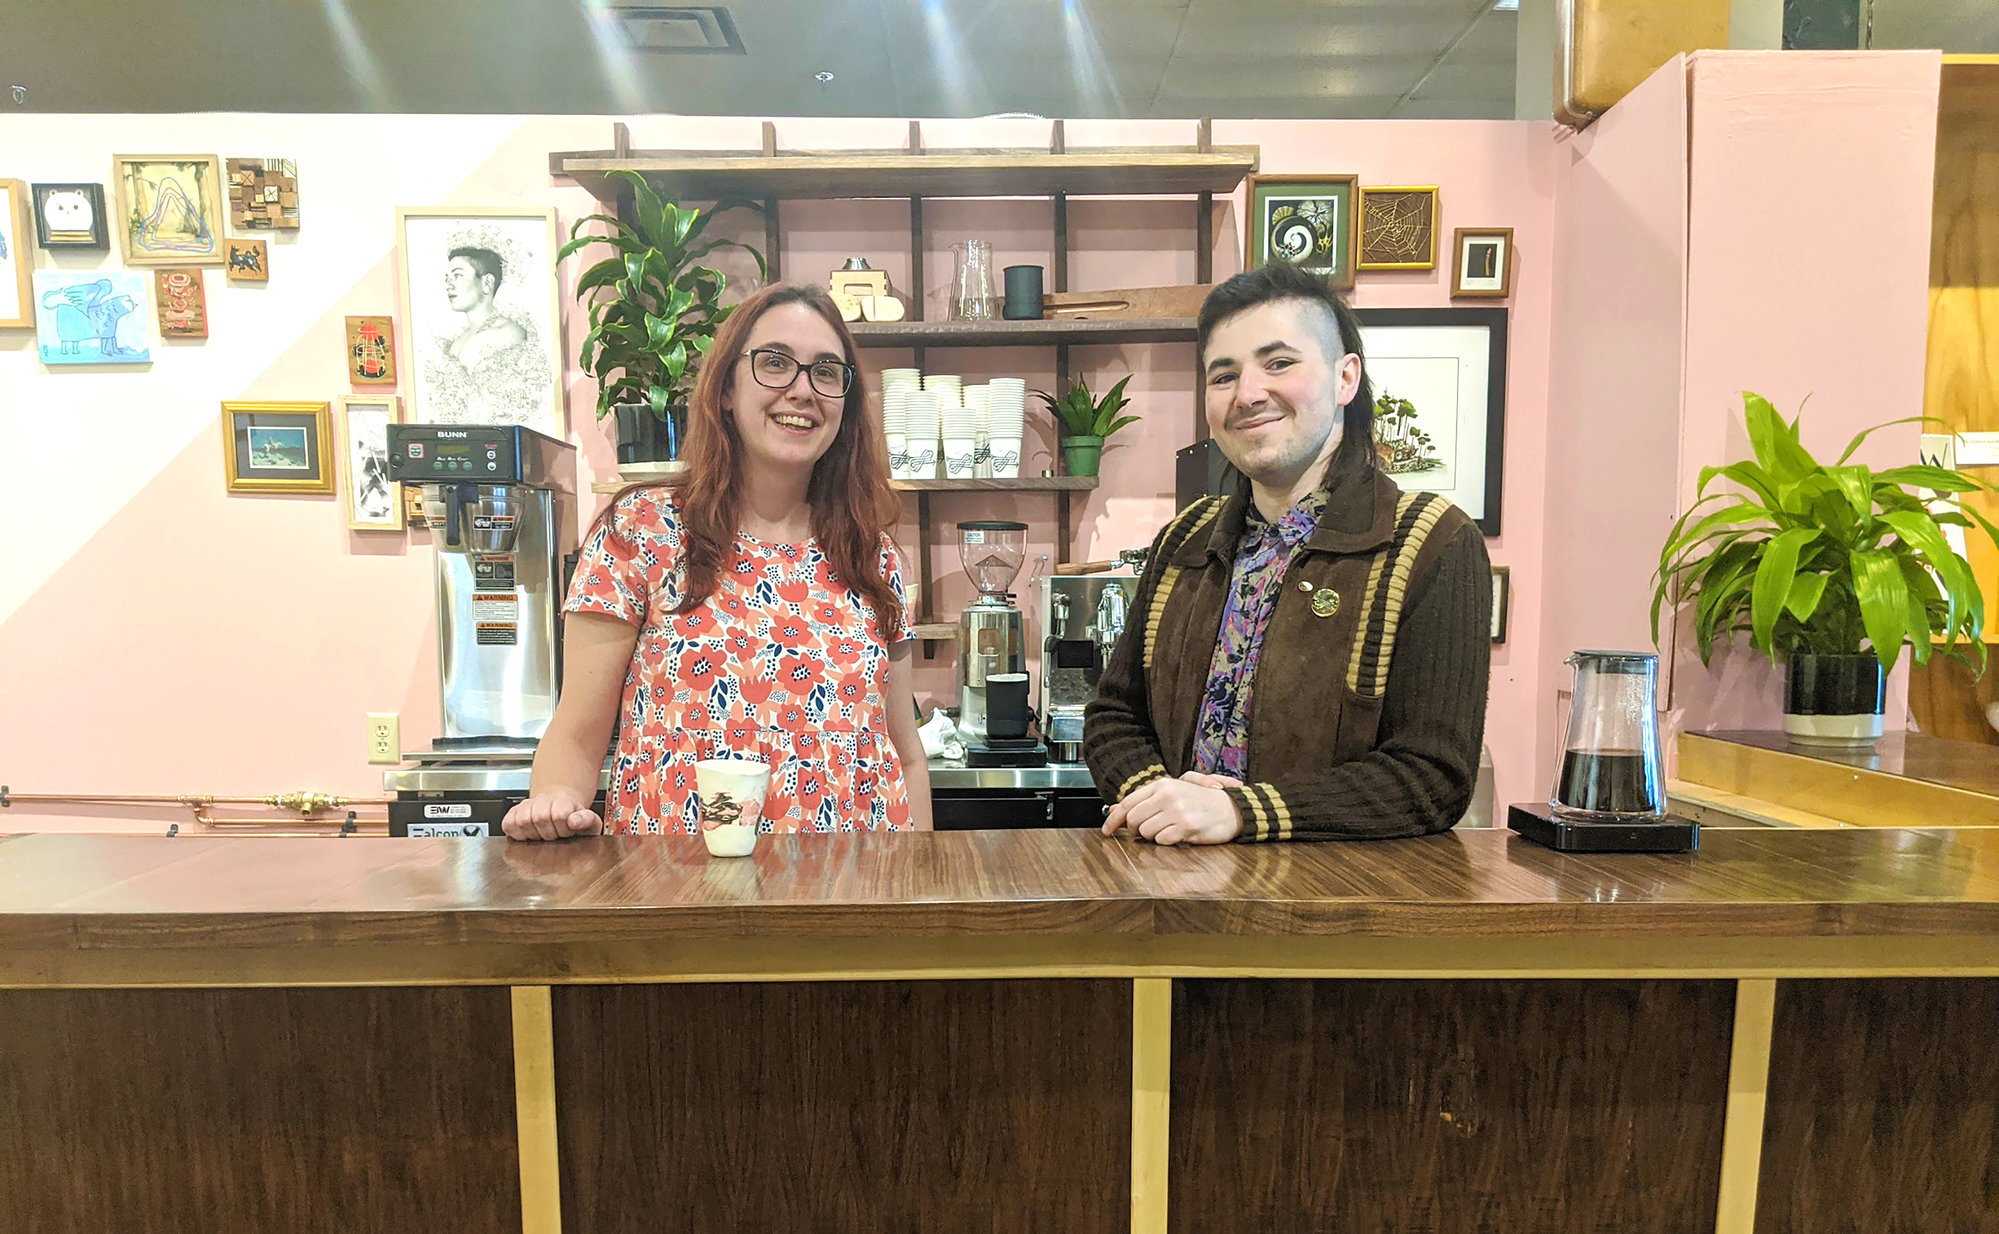 Megan Vidler (left) and Caleb Harrington (right) stand behind the bar of Nothing Nowhere Café, located inside of Home Green Home on the Ithaca Commons.